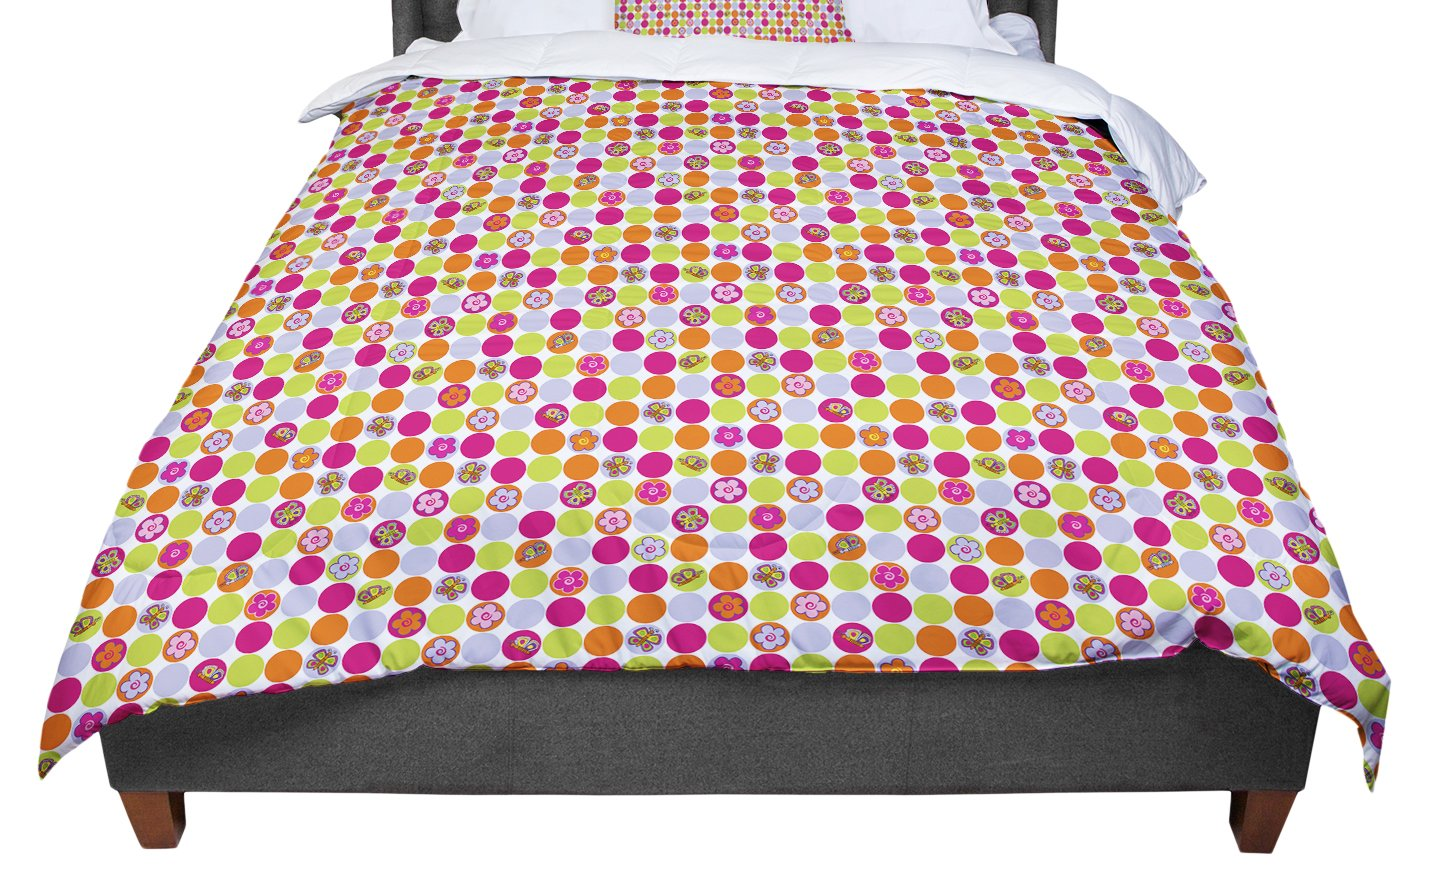 KESS InHouse Julia Grifol Happy Circles Twin Comforter 68 X 88